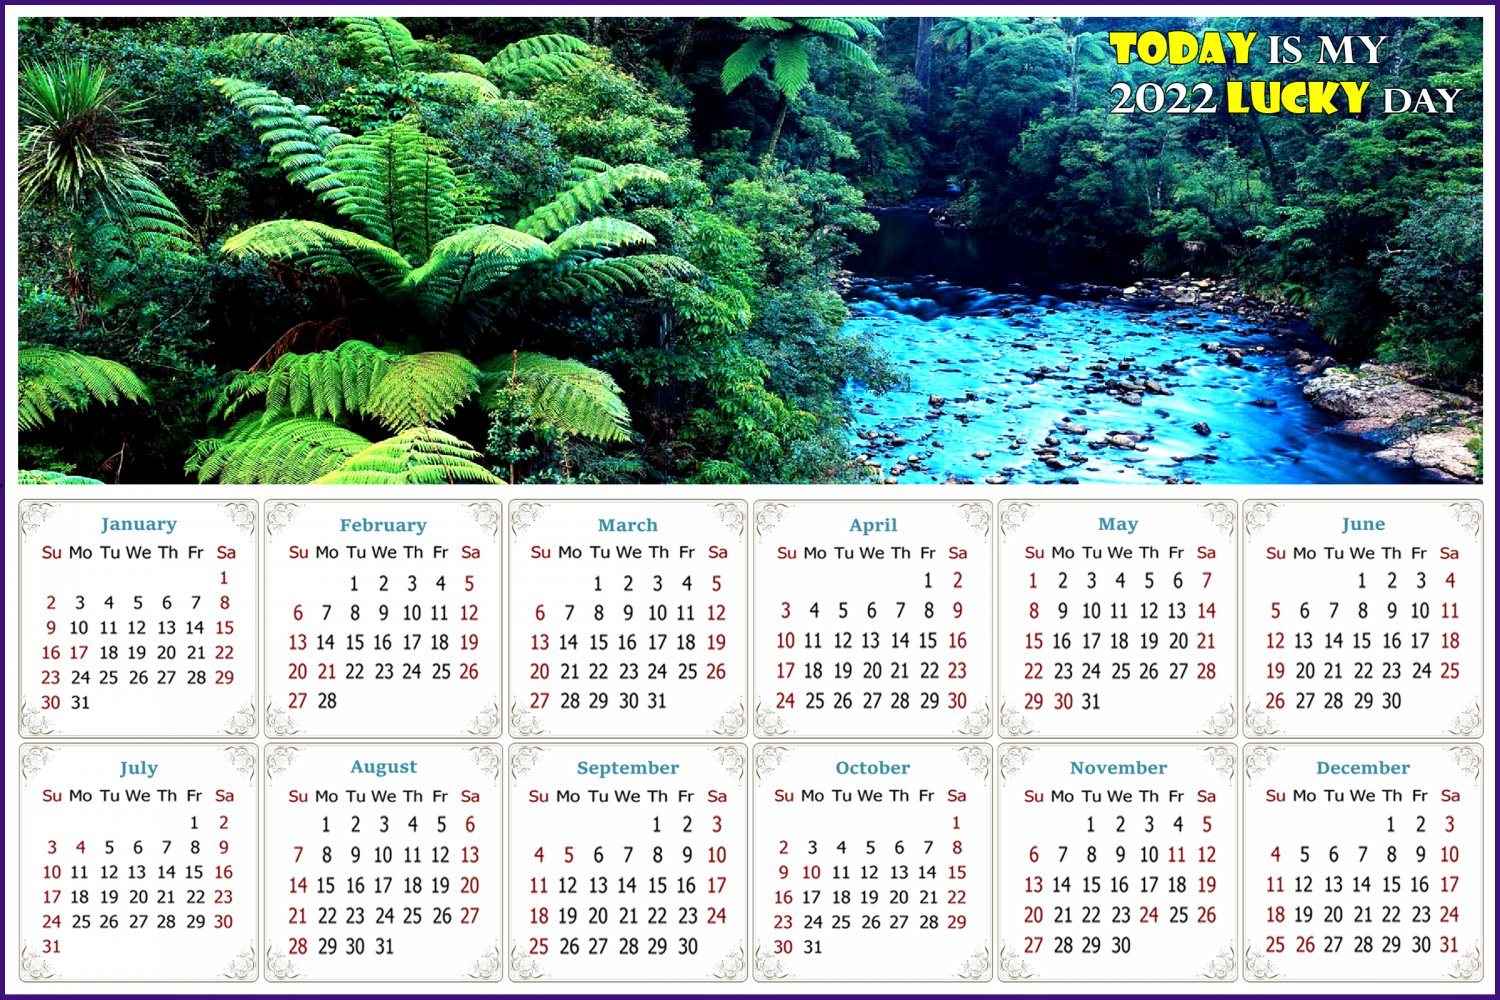 2022 Magnetic Calendar - Today is My Lucky Day - (Waipoua Kauri Reserve)